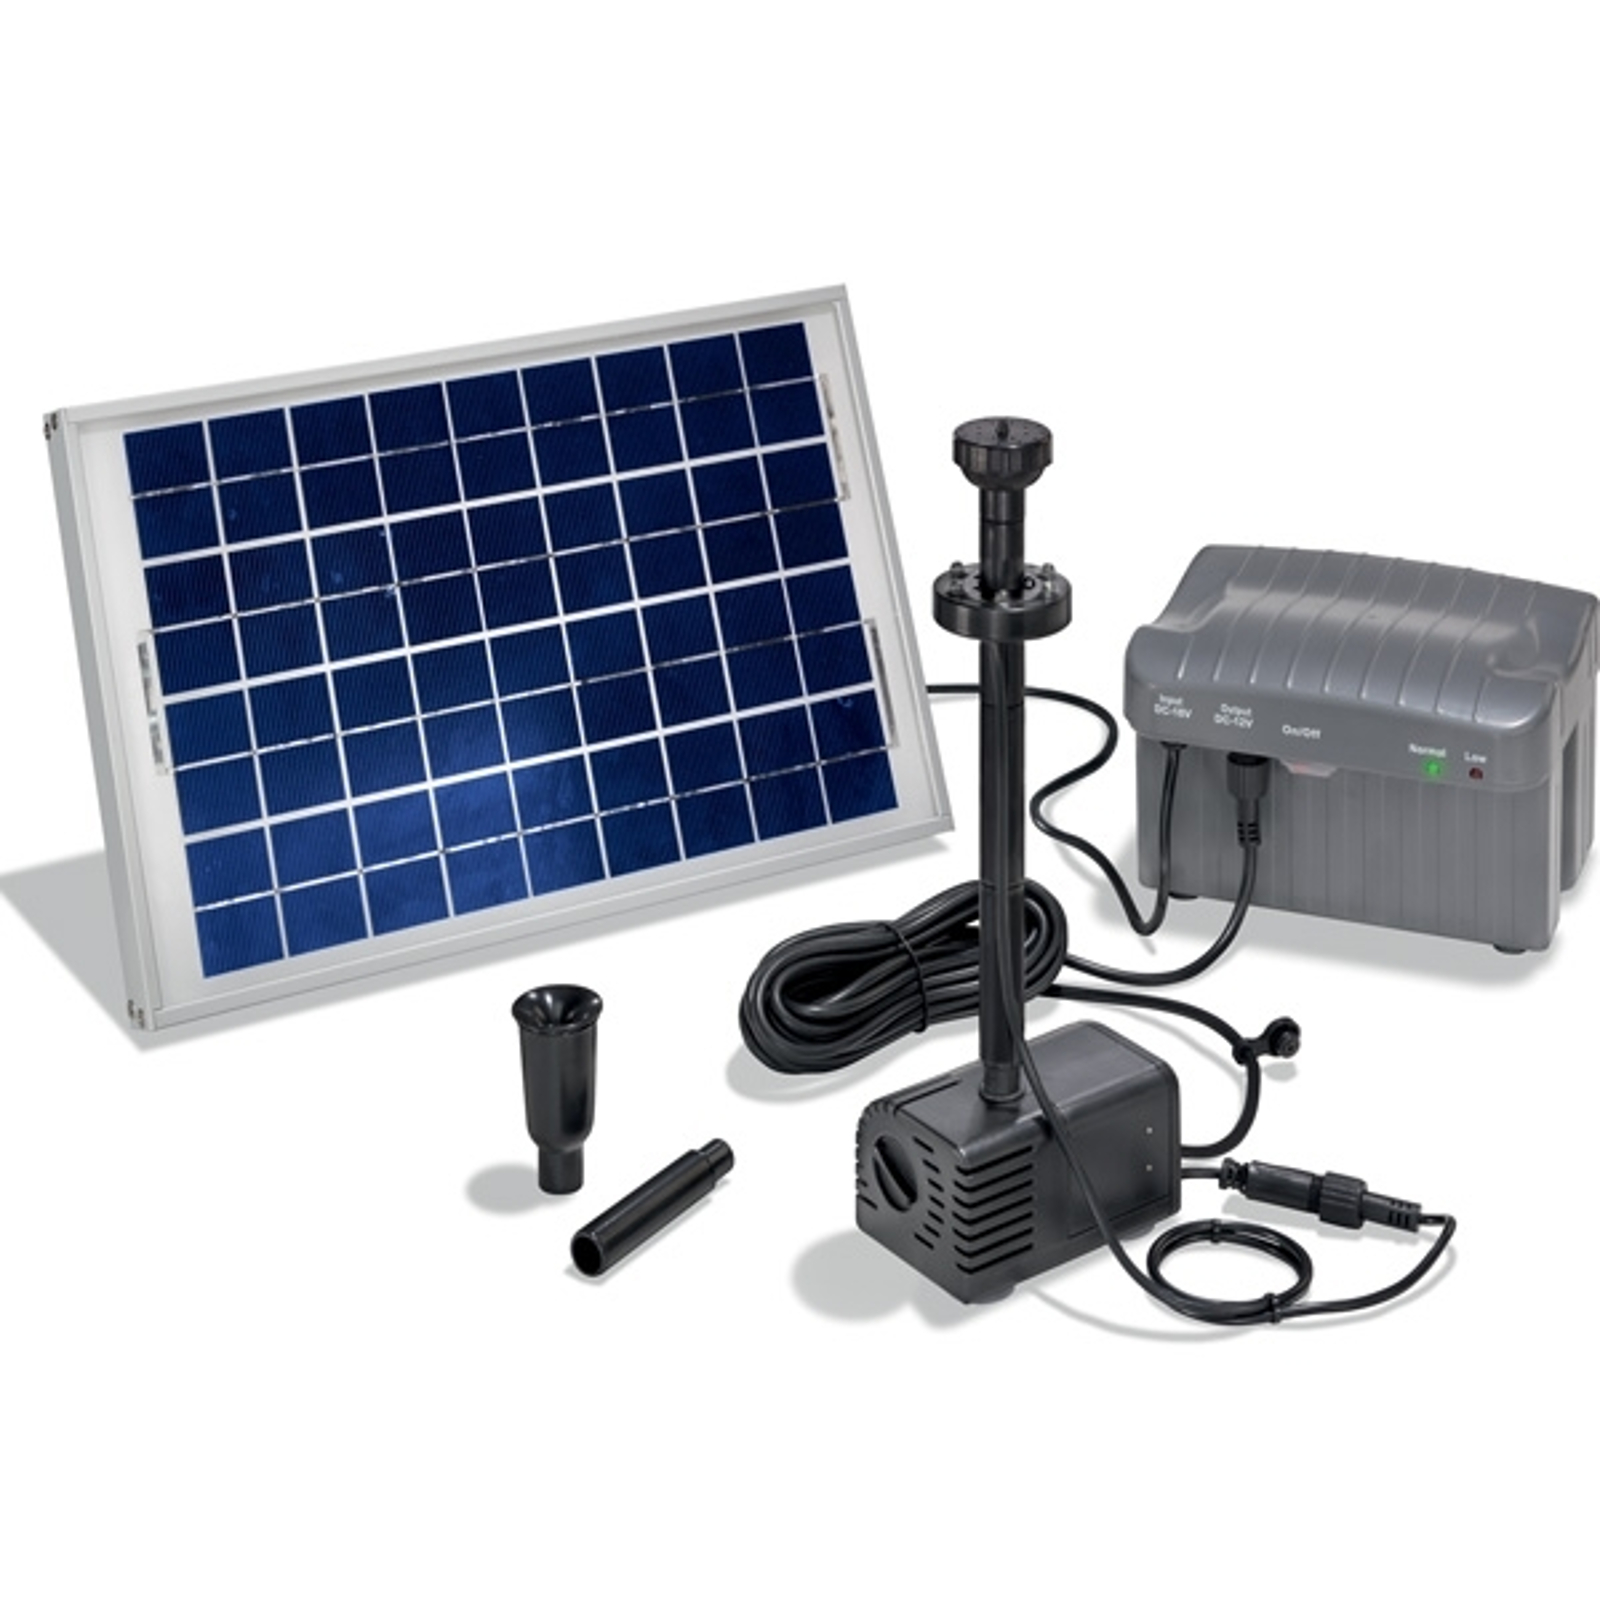 Solar pump system Siena with LEDs_3012106_1